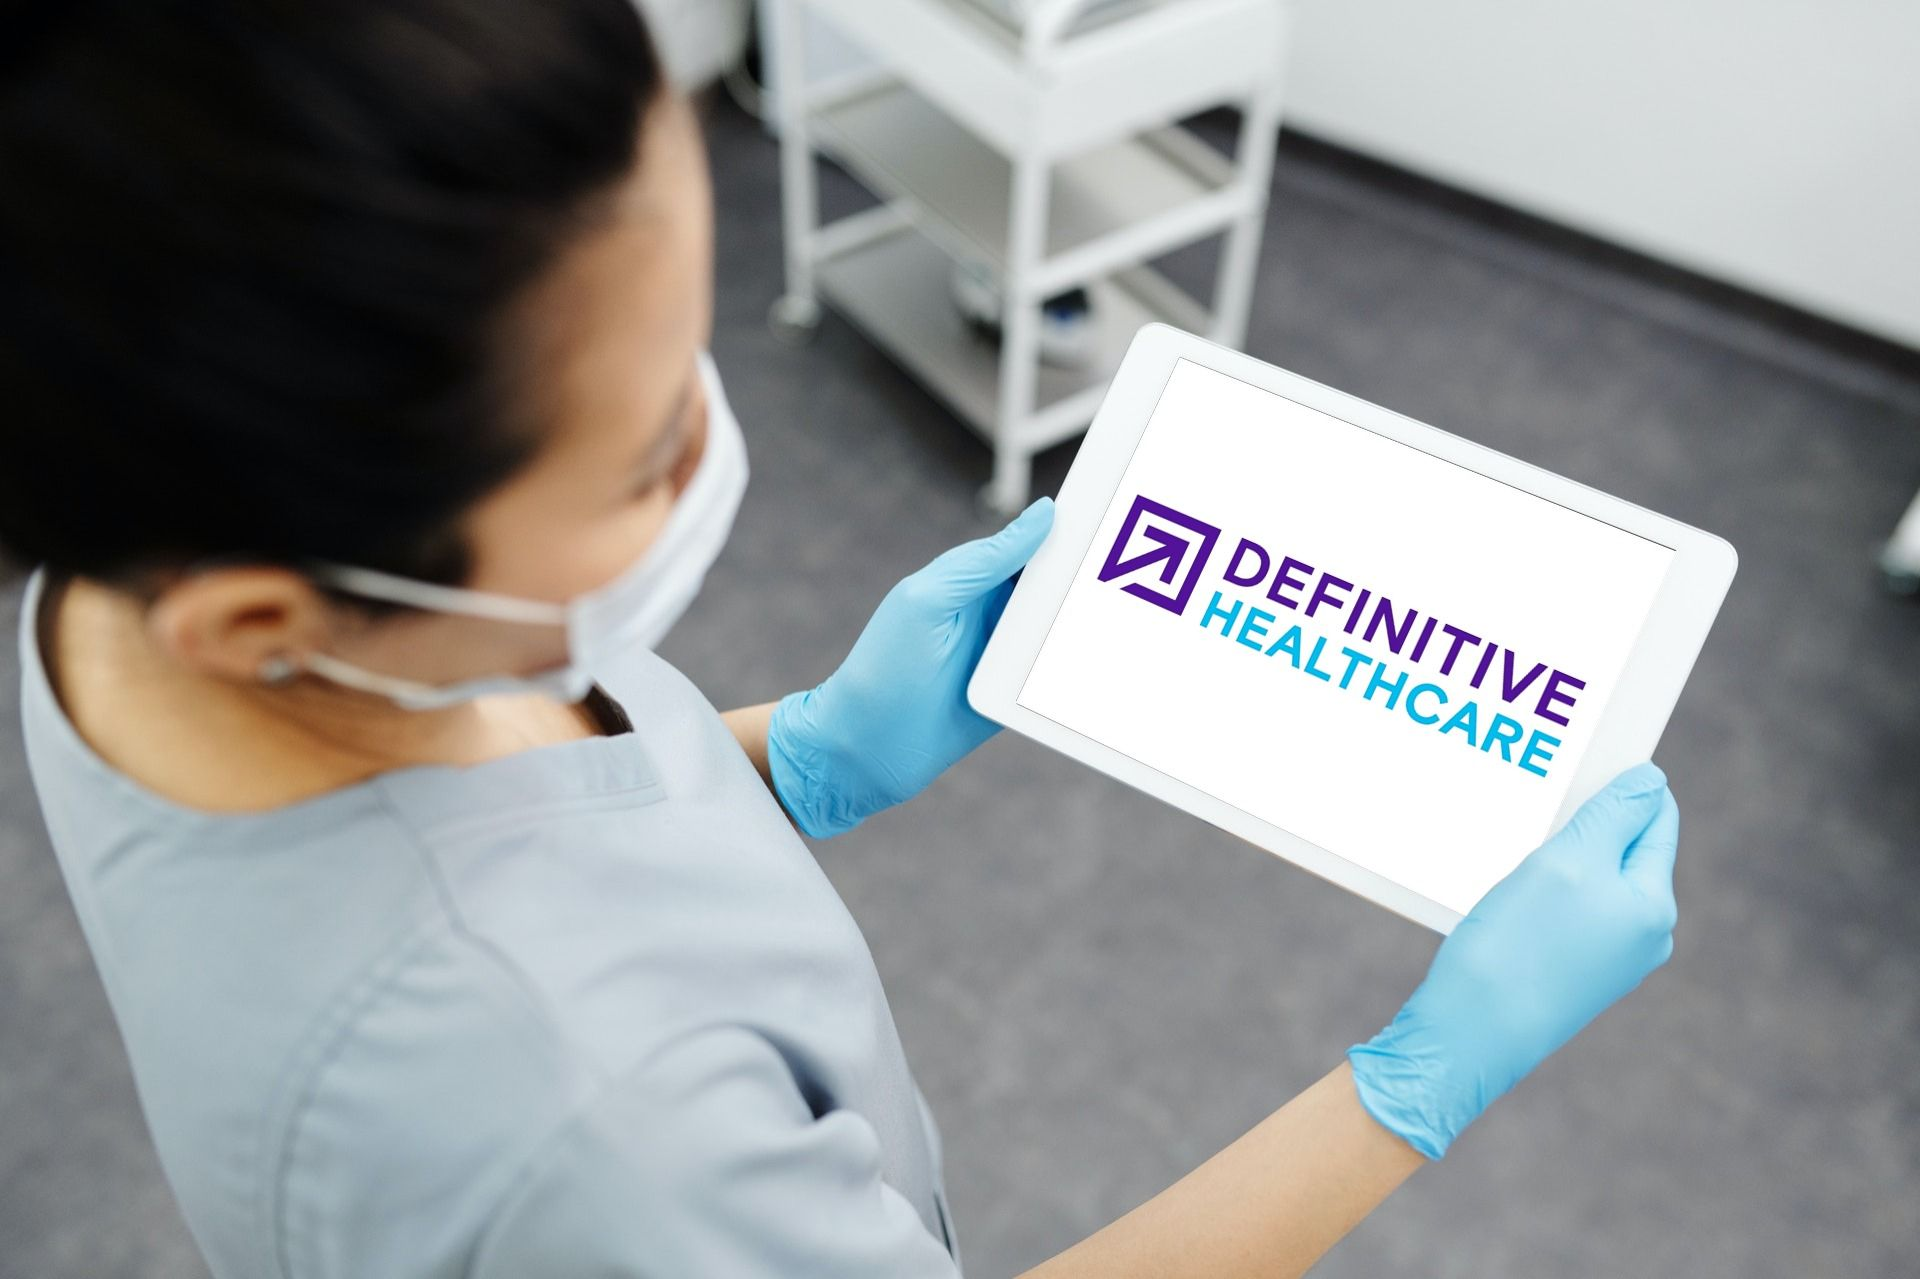 Definitive Healthcare Initial Public Offering